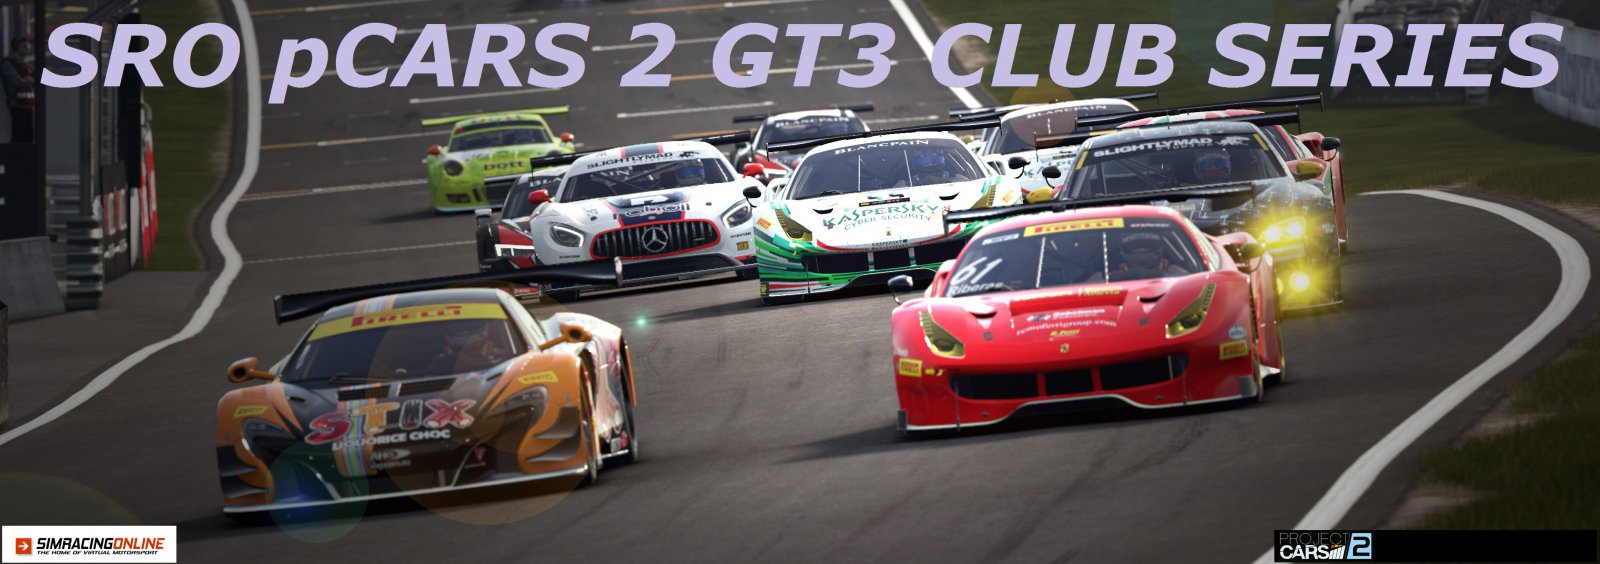 Project CARS 2 gt3 banor 3.jpg